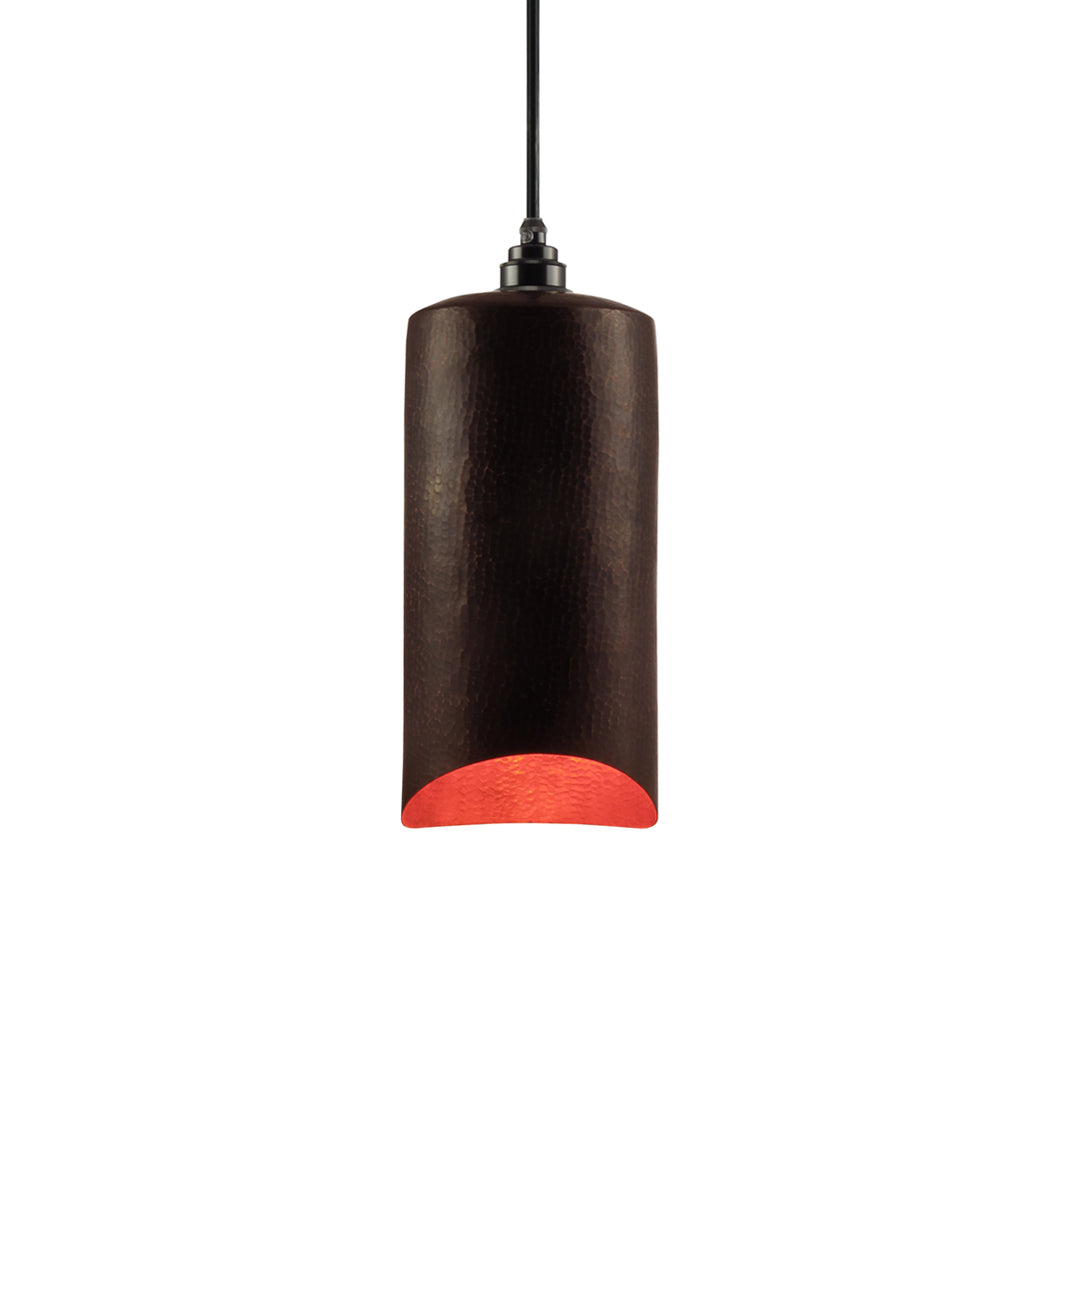 Modern hand made small cylindrial shaped copper pendant lamp in a warm brown copper patina finish